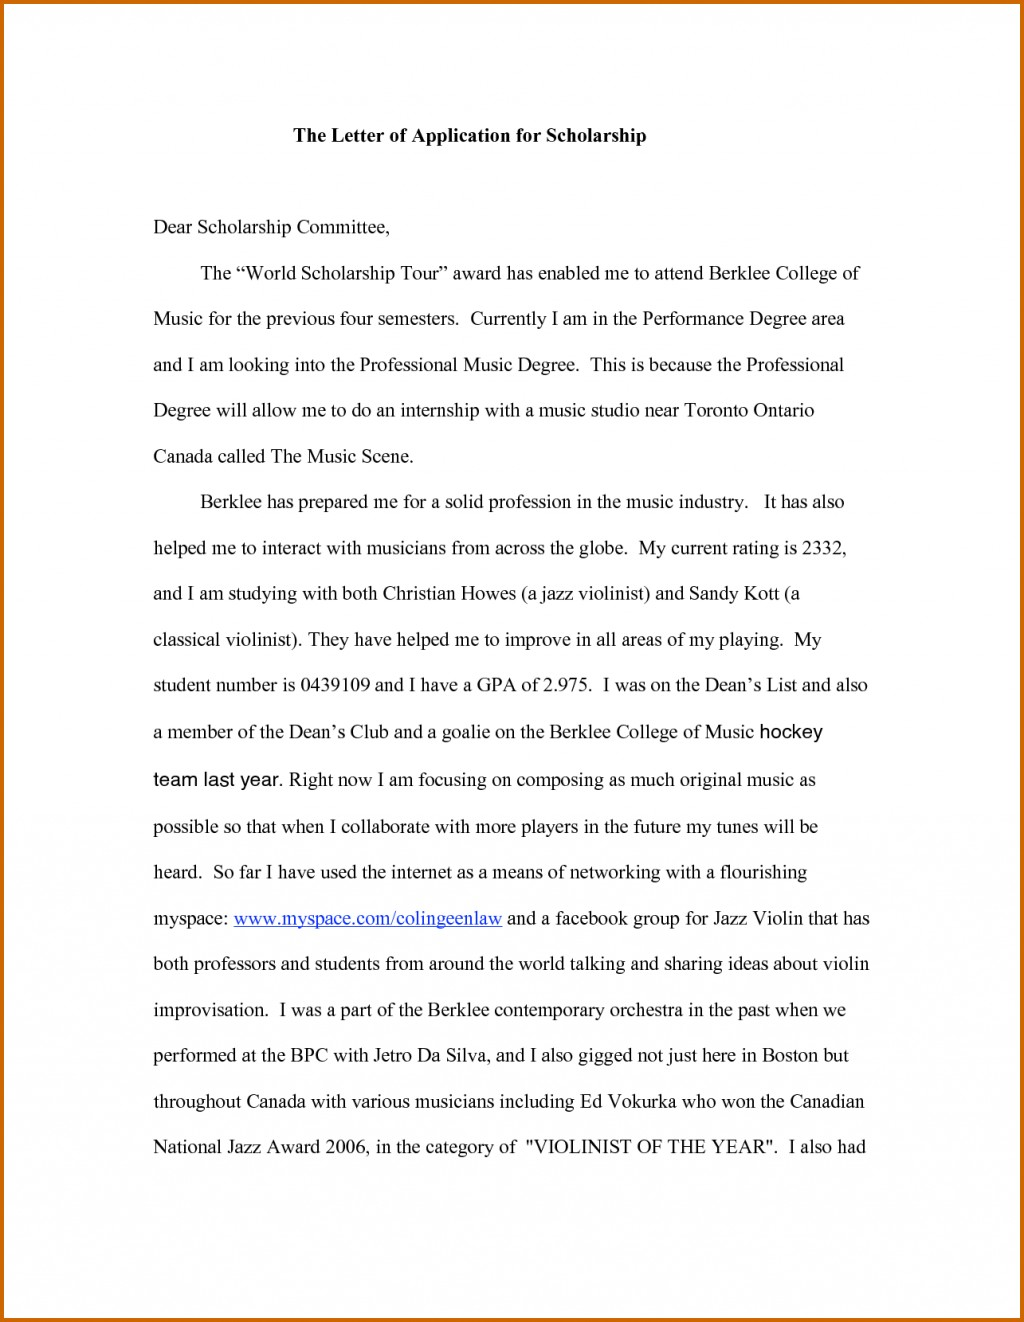 004 Why I Need Scholarship Essay Example How To Write Application For Impressive A Should Receive Want Be Teacher Large